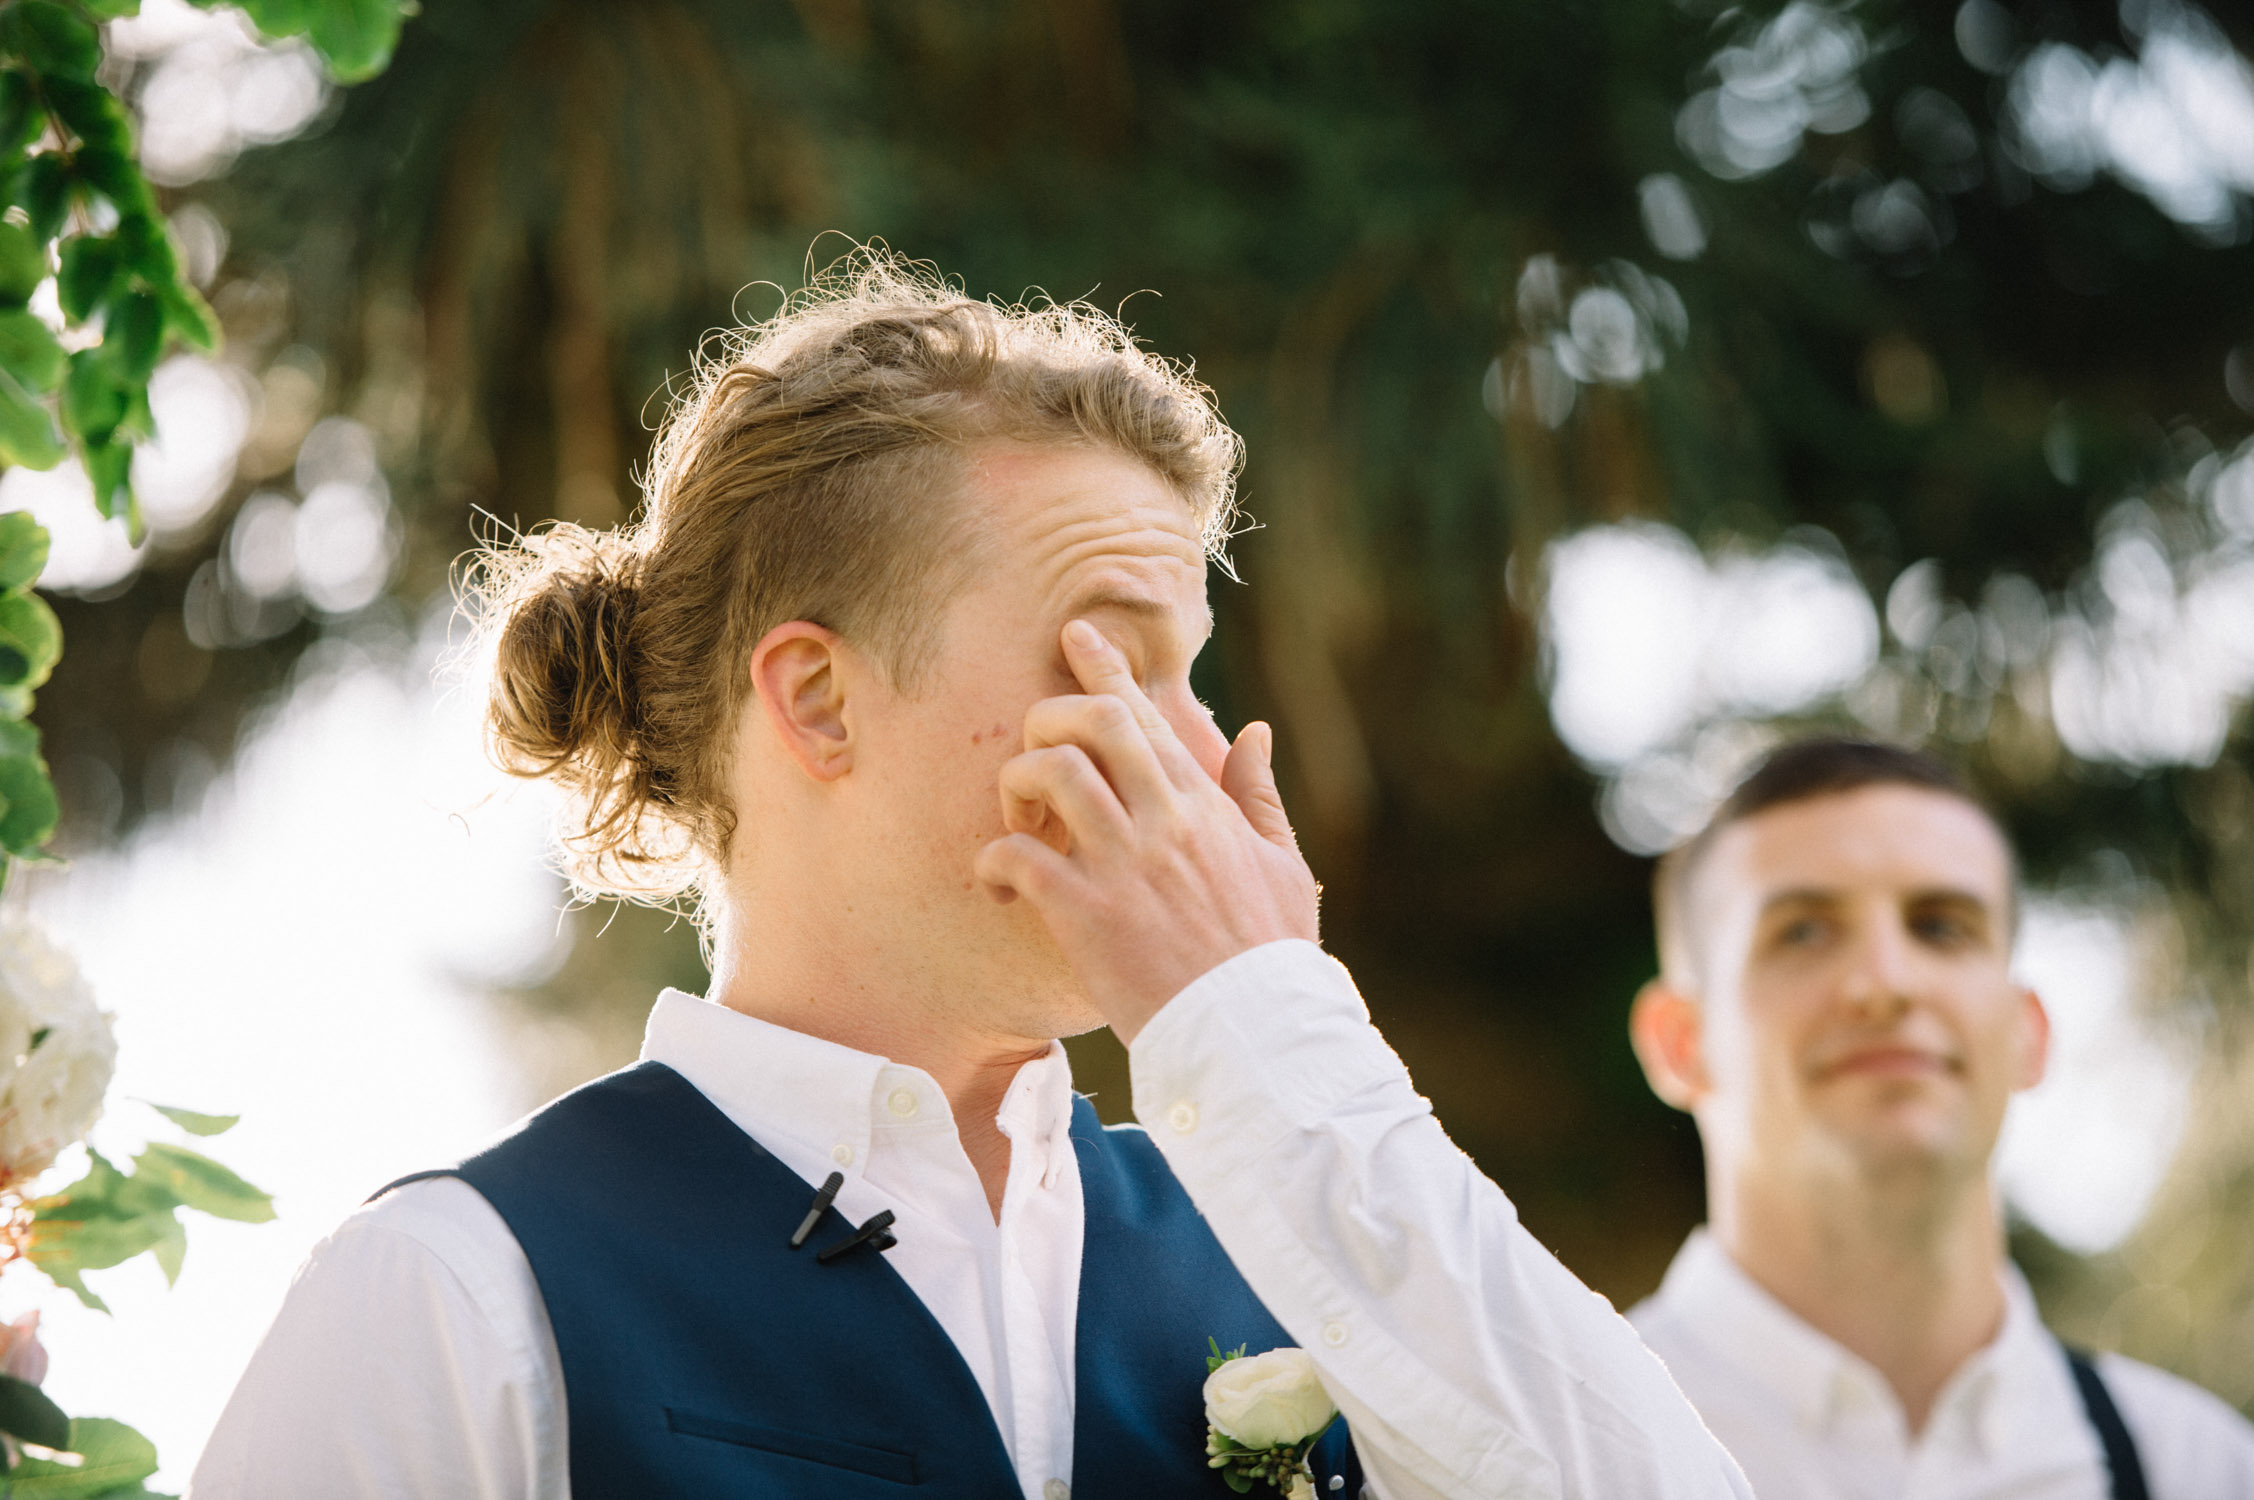 Groom cries at wedding